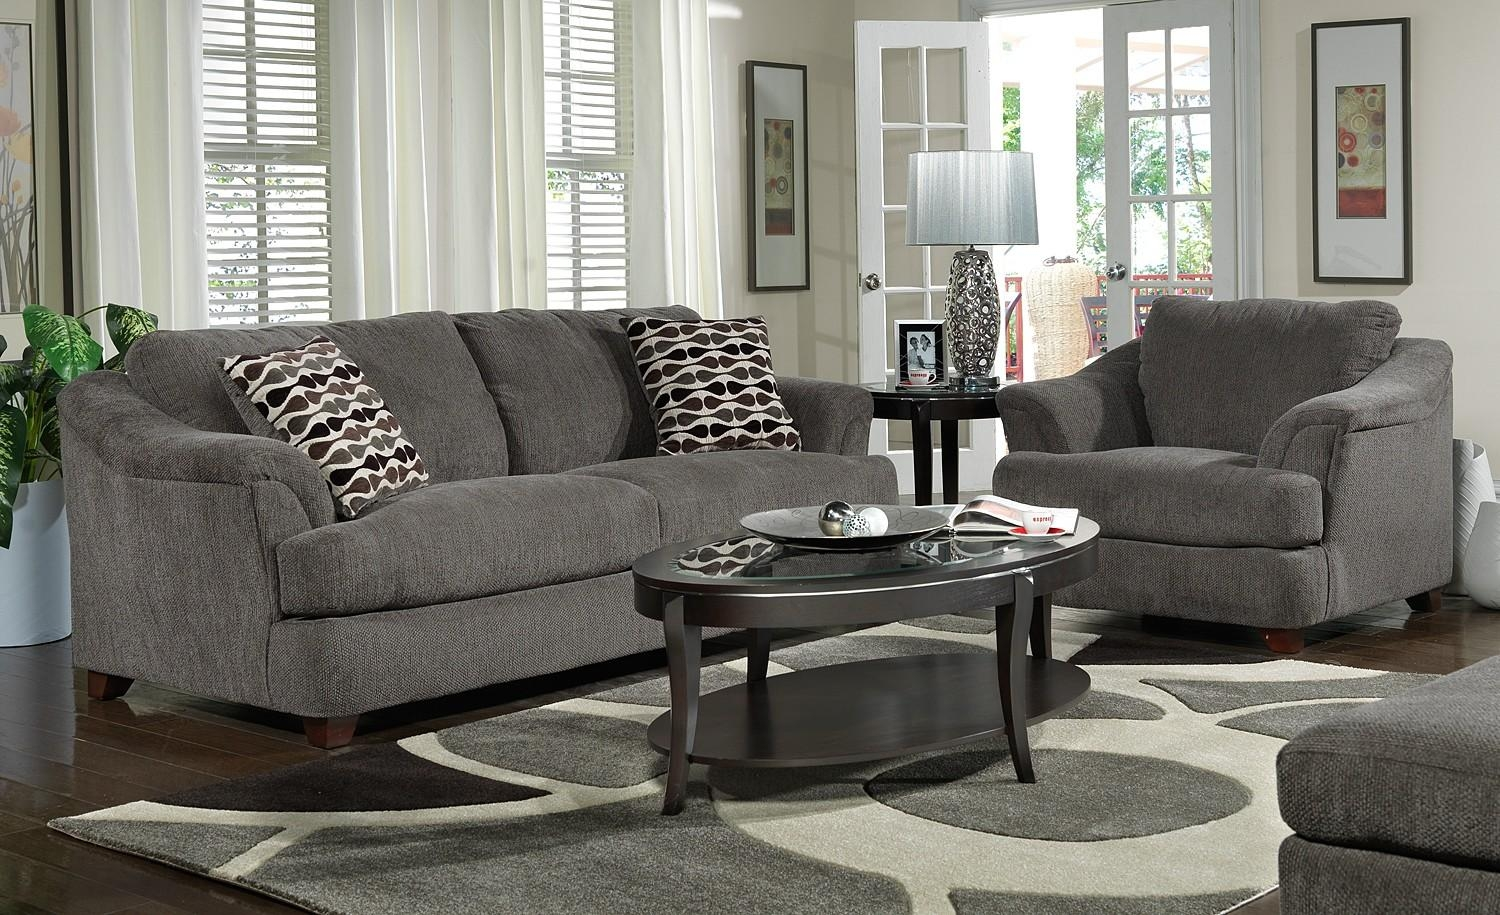 54 Living Rooms With Gray Sofas Grey Sofa Living Room Ideas with regard to Gray Sofas